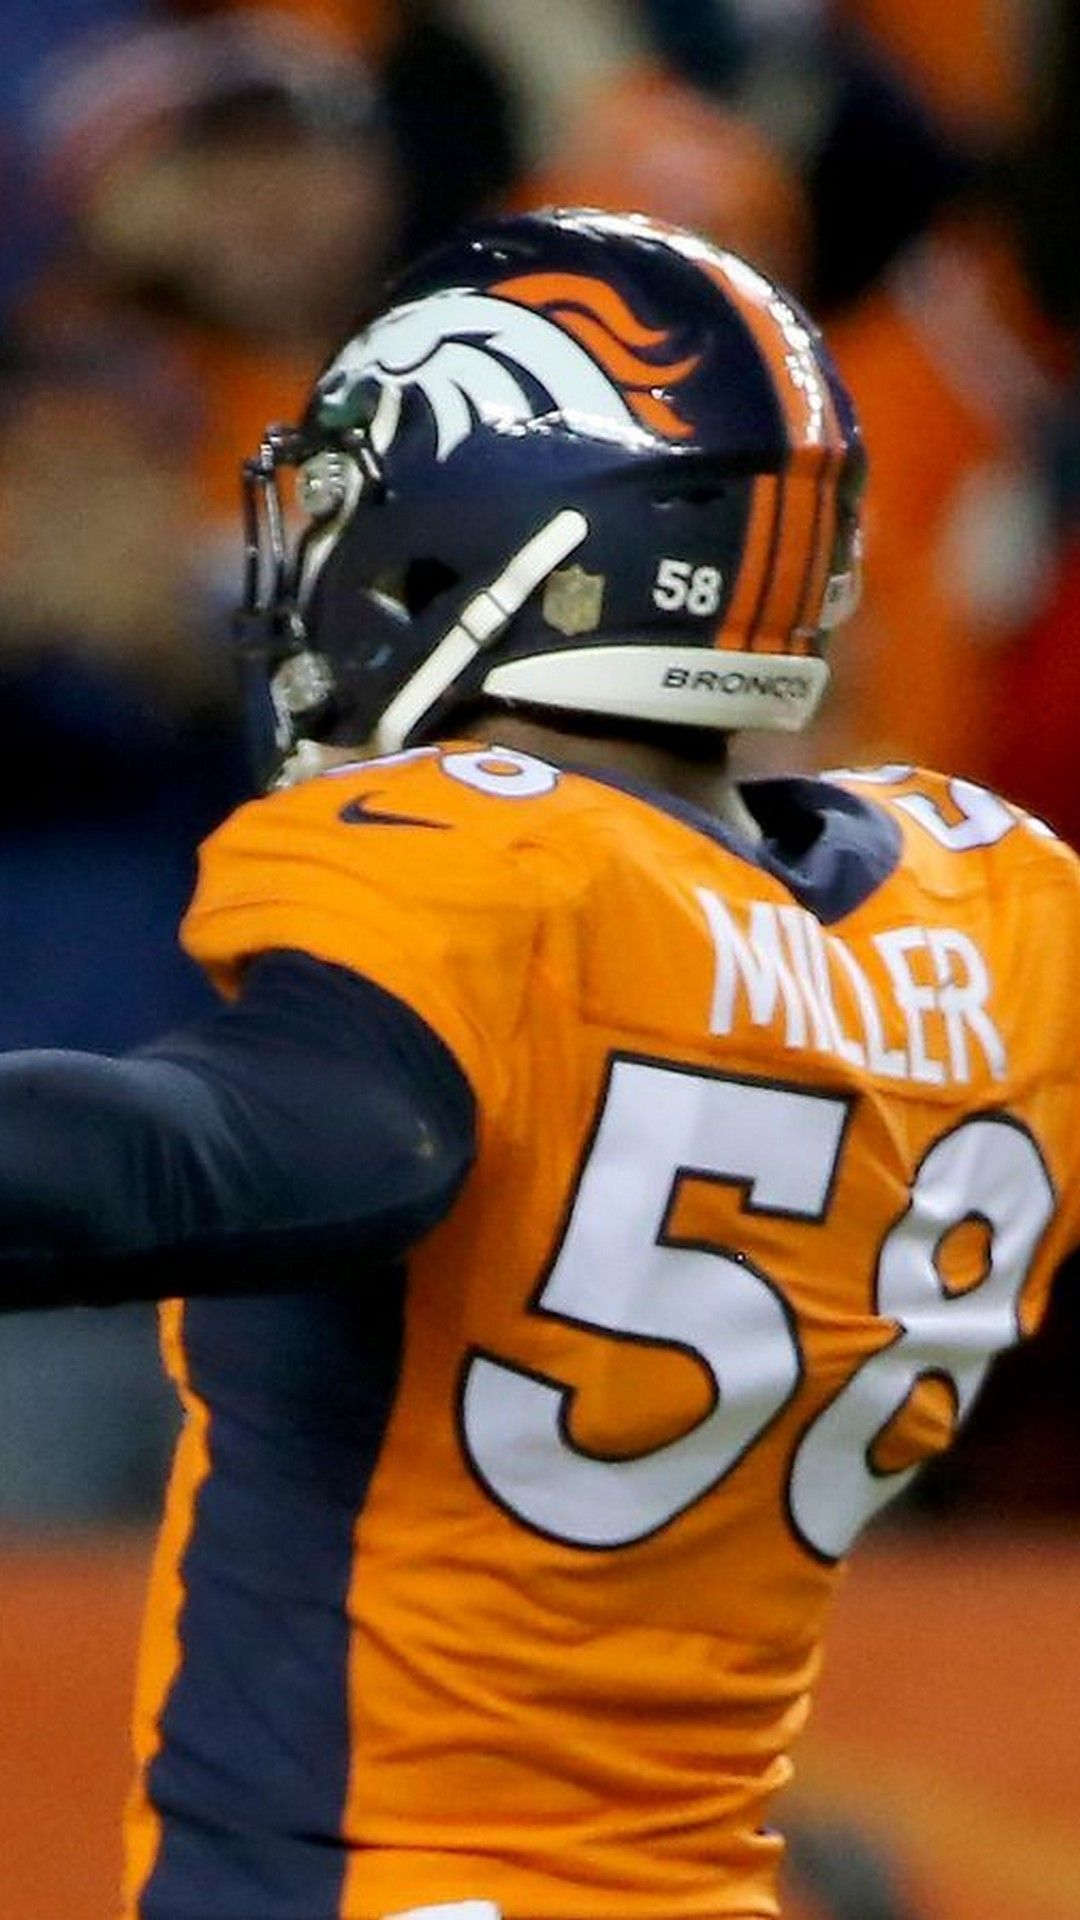 Von Miller Denver Broncos iPhone Wallpapers Nfl football